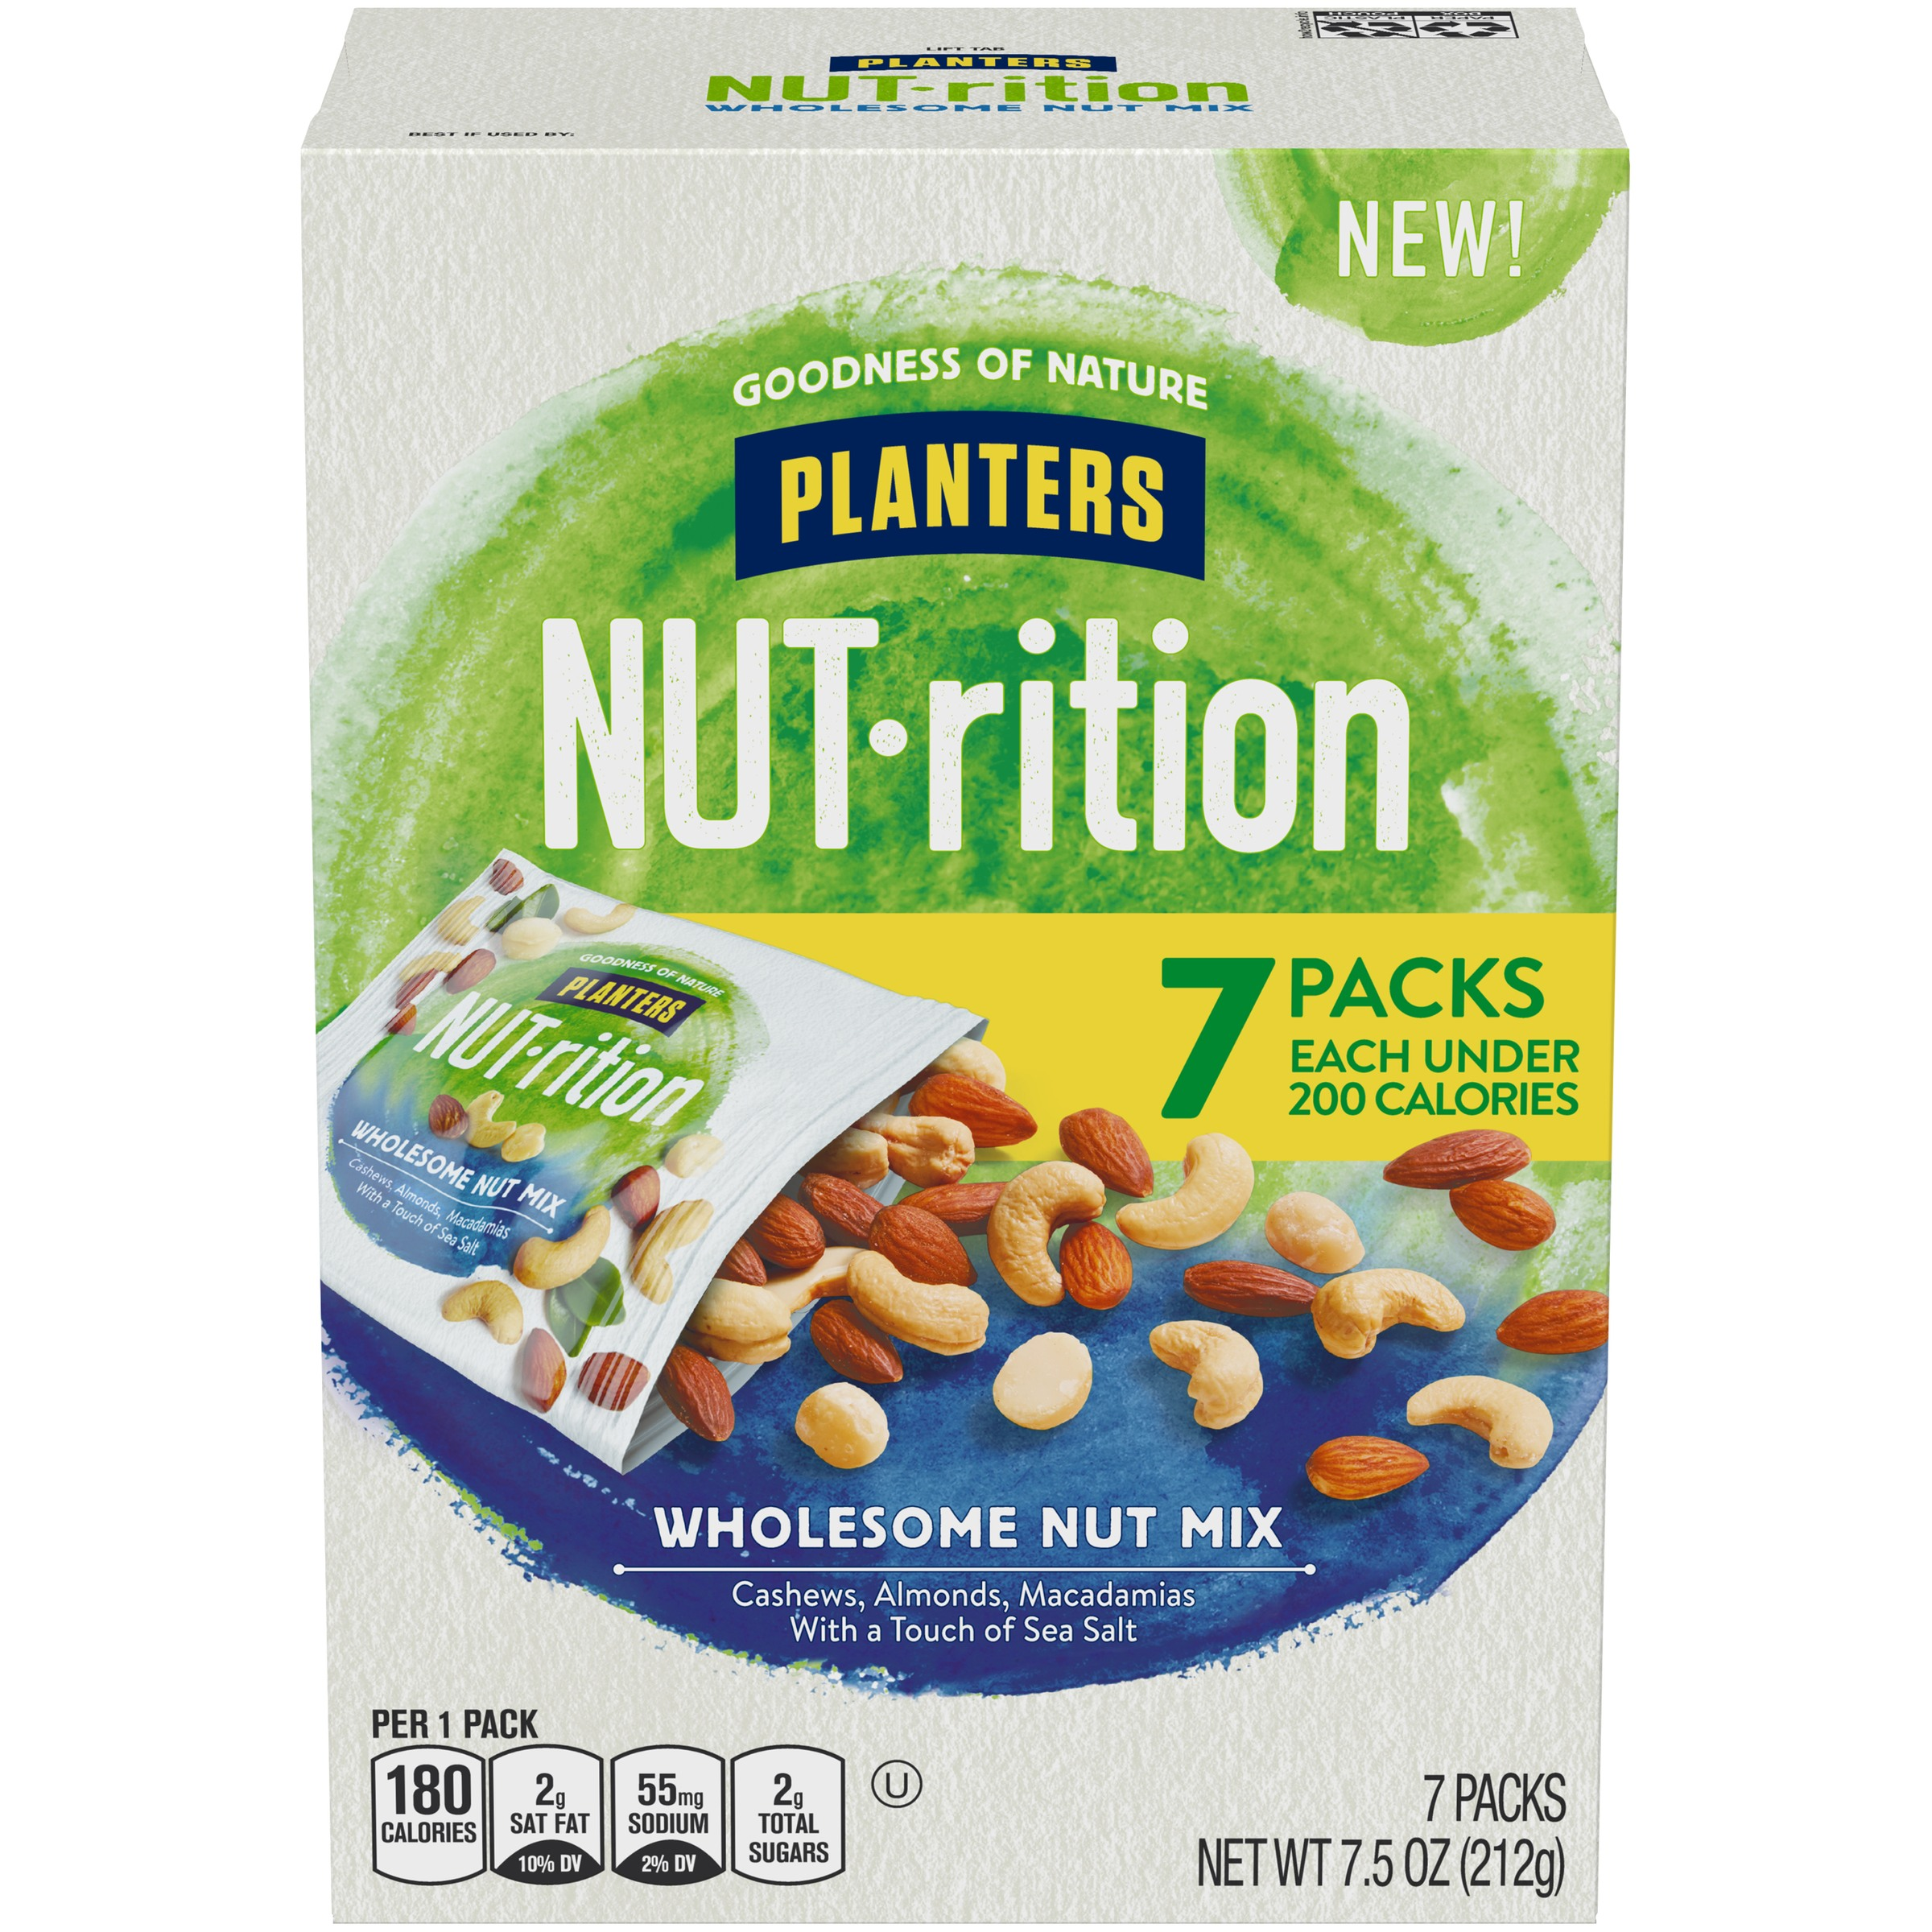 Planters NUT-rition Wholesome Nut Mix 7 ct Box